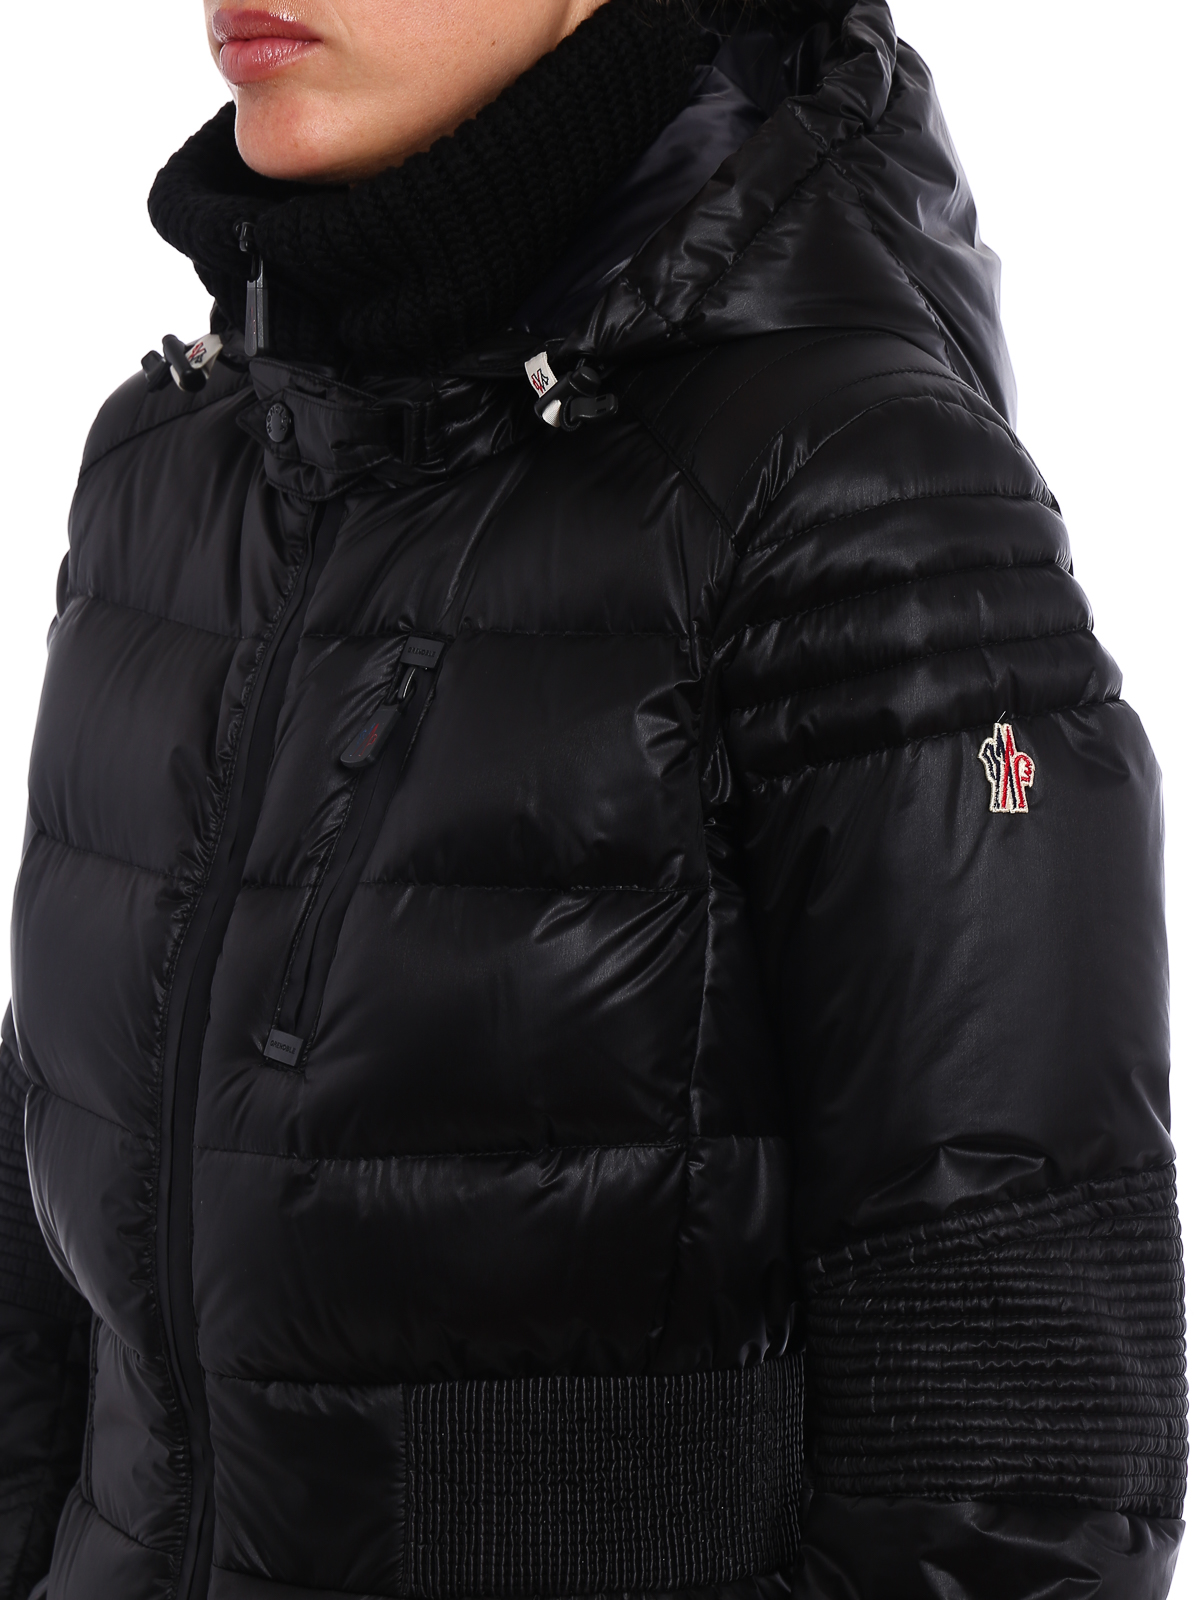 Visit New Sale Collections Moncler Grenoble Roncevaux padded jacket Reliable Sale Online gVKAZbs